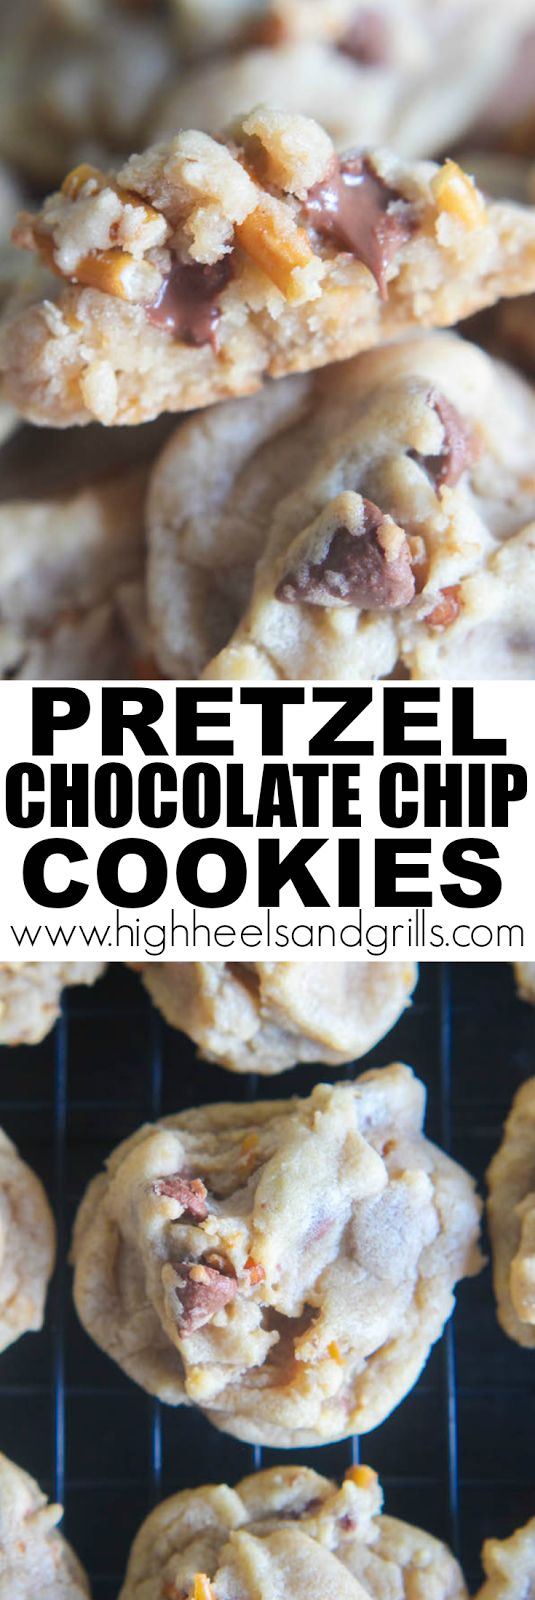 Pretzel Chocolate Chip Cookies - Perfect combo of salt and sweet!